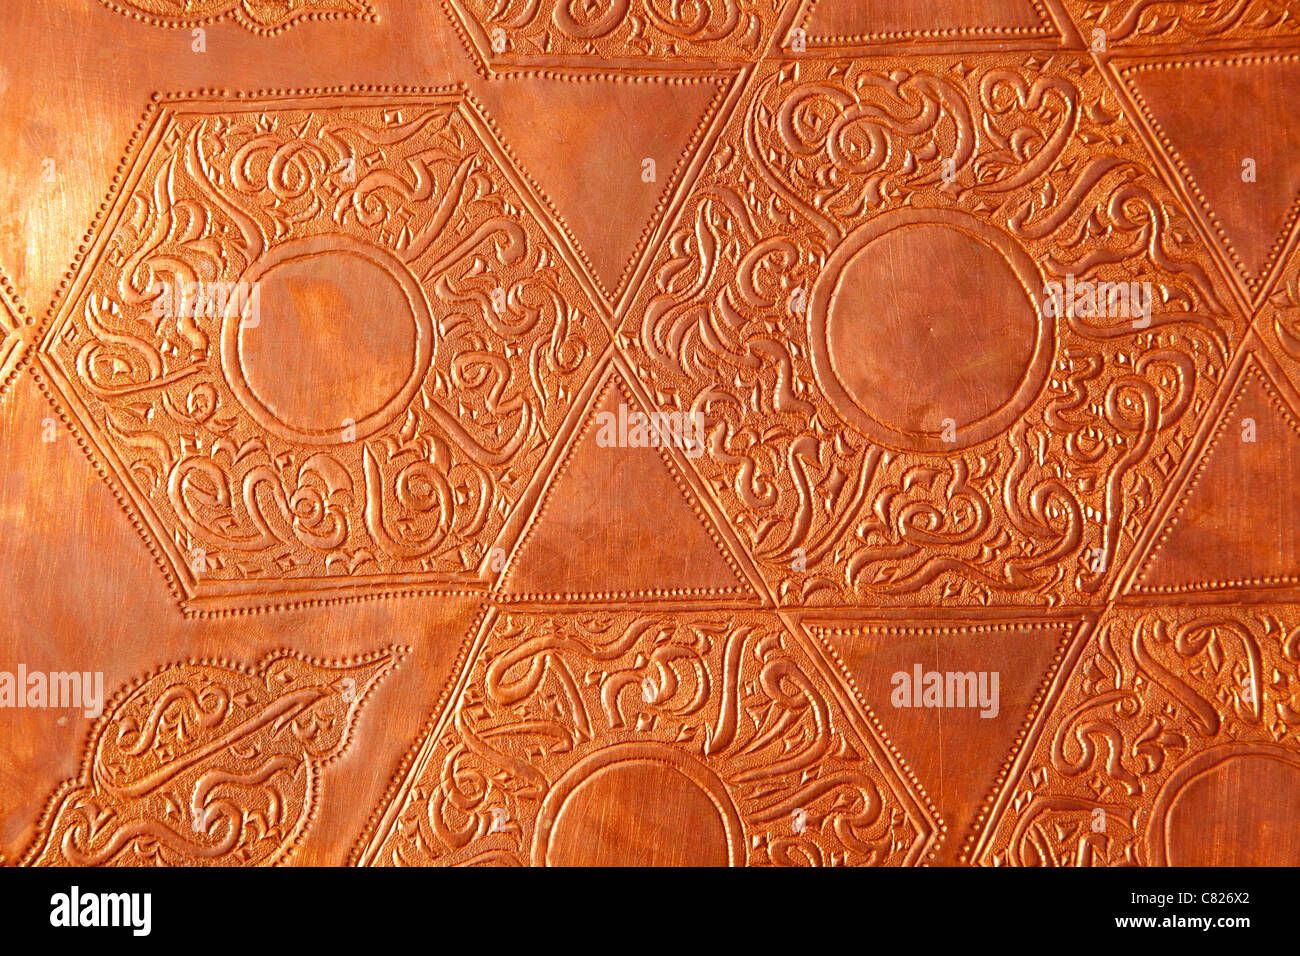 Brass cooper with embossed shapes from arabia - Stock Image